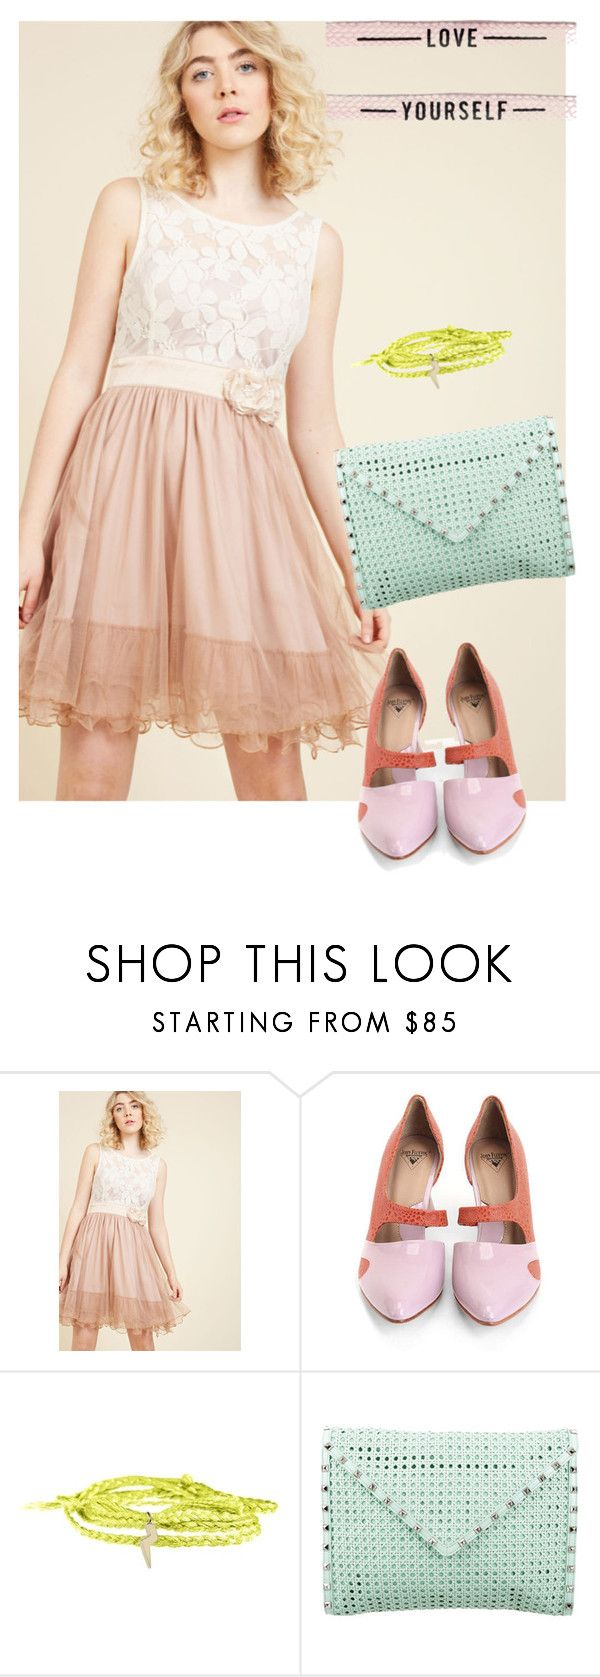 """dress"" by masayuki4499 ❤ liked on Polyvore featuring Ryu, John Fluevog, Minor Obsessions and Rebecca Minkoff"